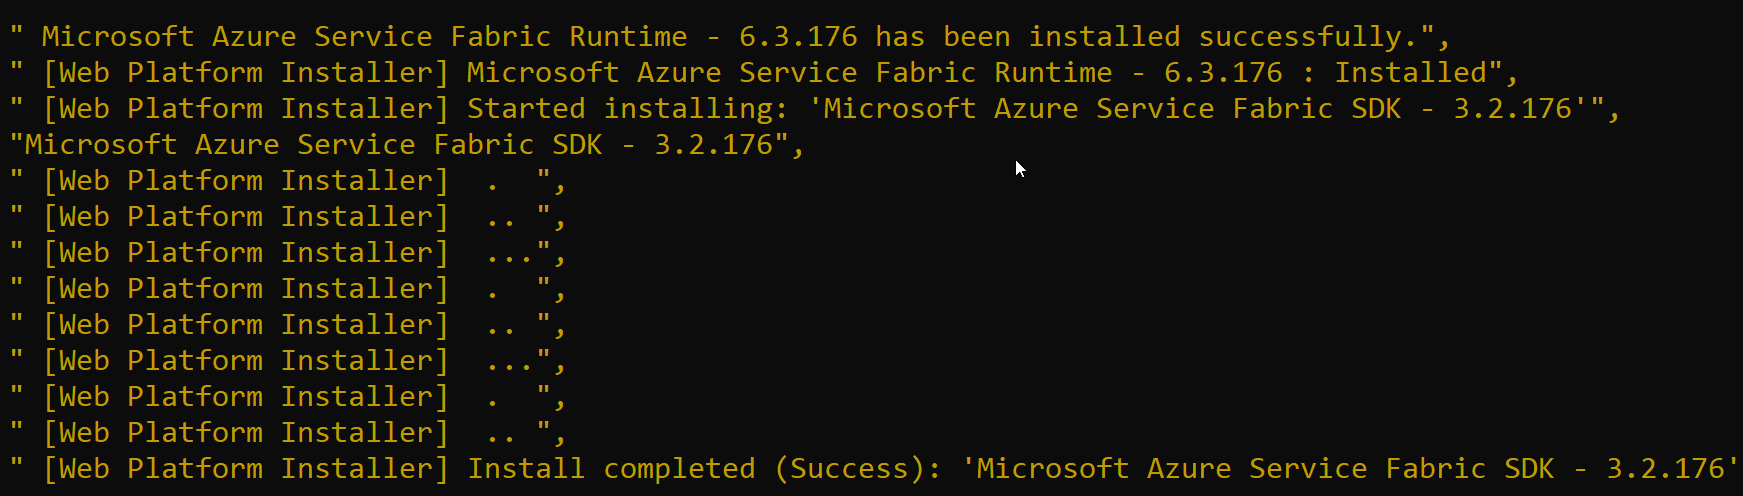 Azure Service Fabric SDK installation